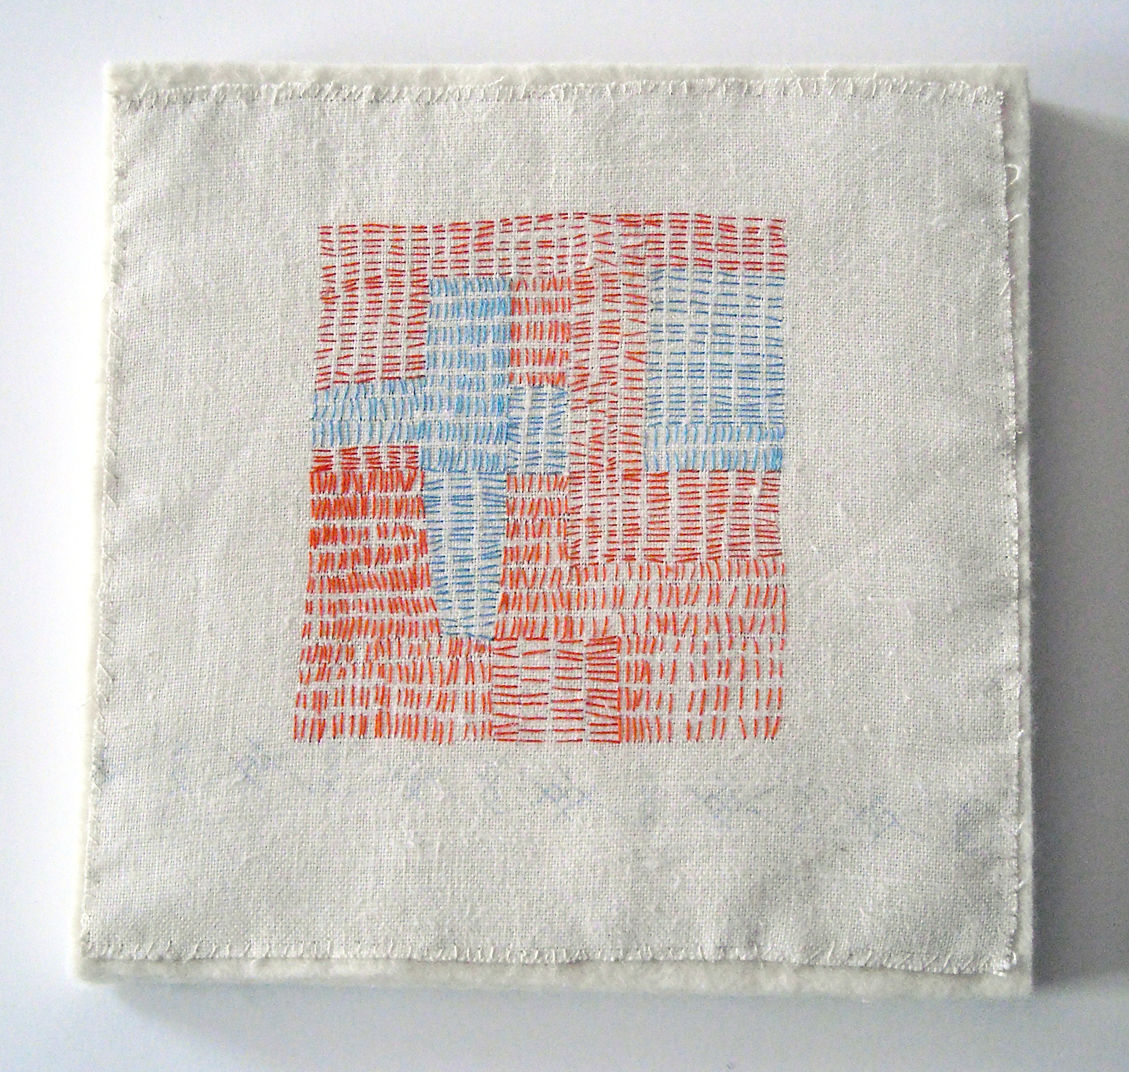 "Crossroads, 2007, hand stitched on vintage linen, 9"" x 9"" mounted on 1/2"" thick wool felt"